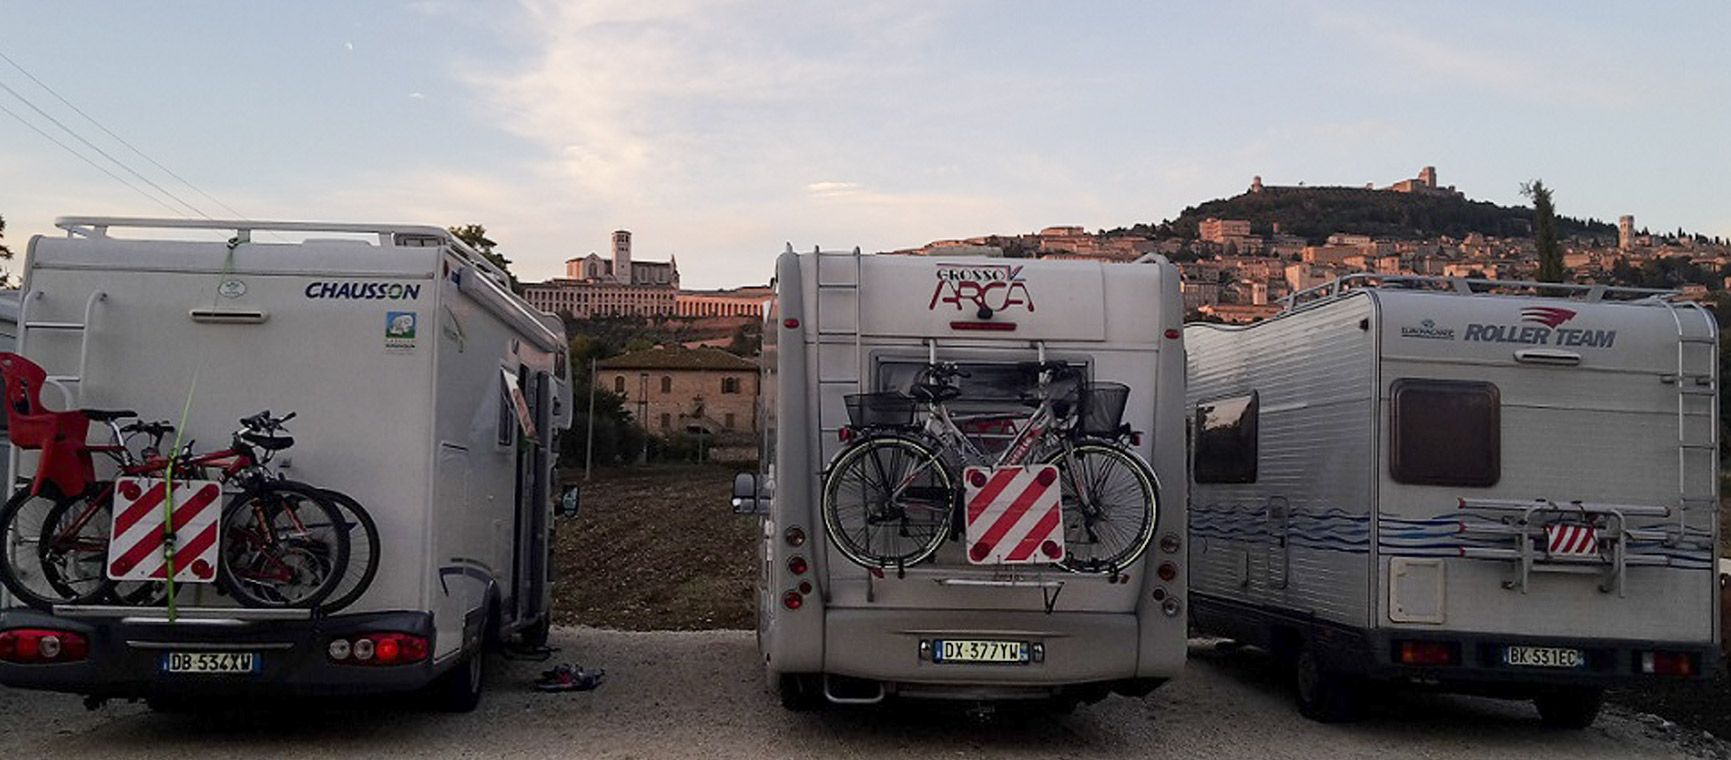 Vacanze in camper ad Assisi. Agrisosta All'Antica Mattonata